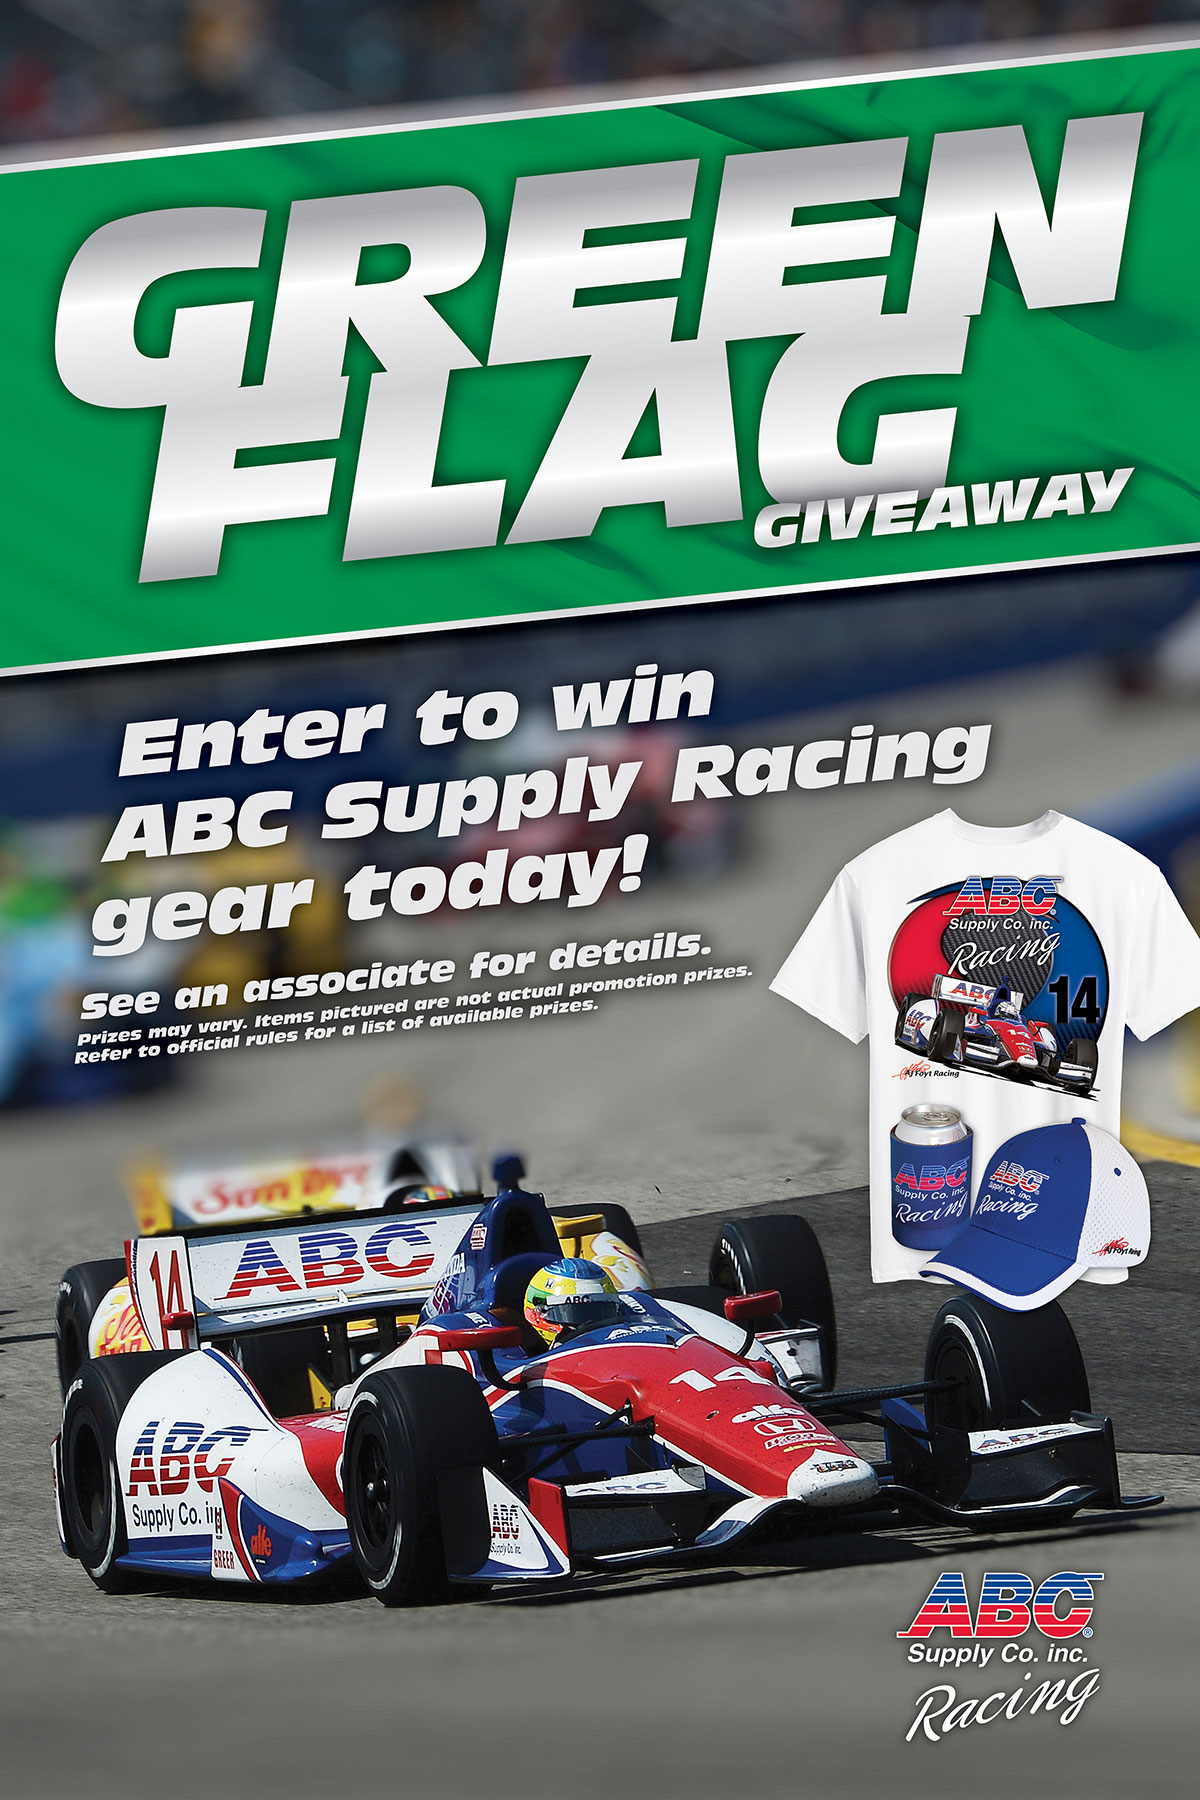 ABC Supply racing green flag giveaway ad